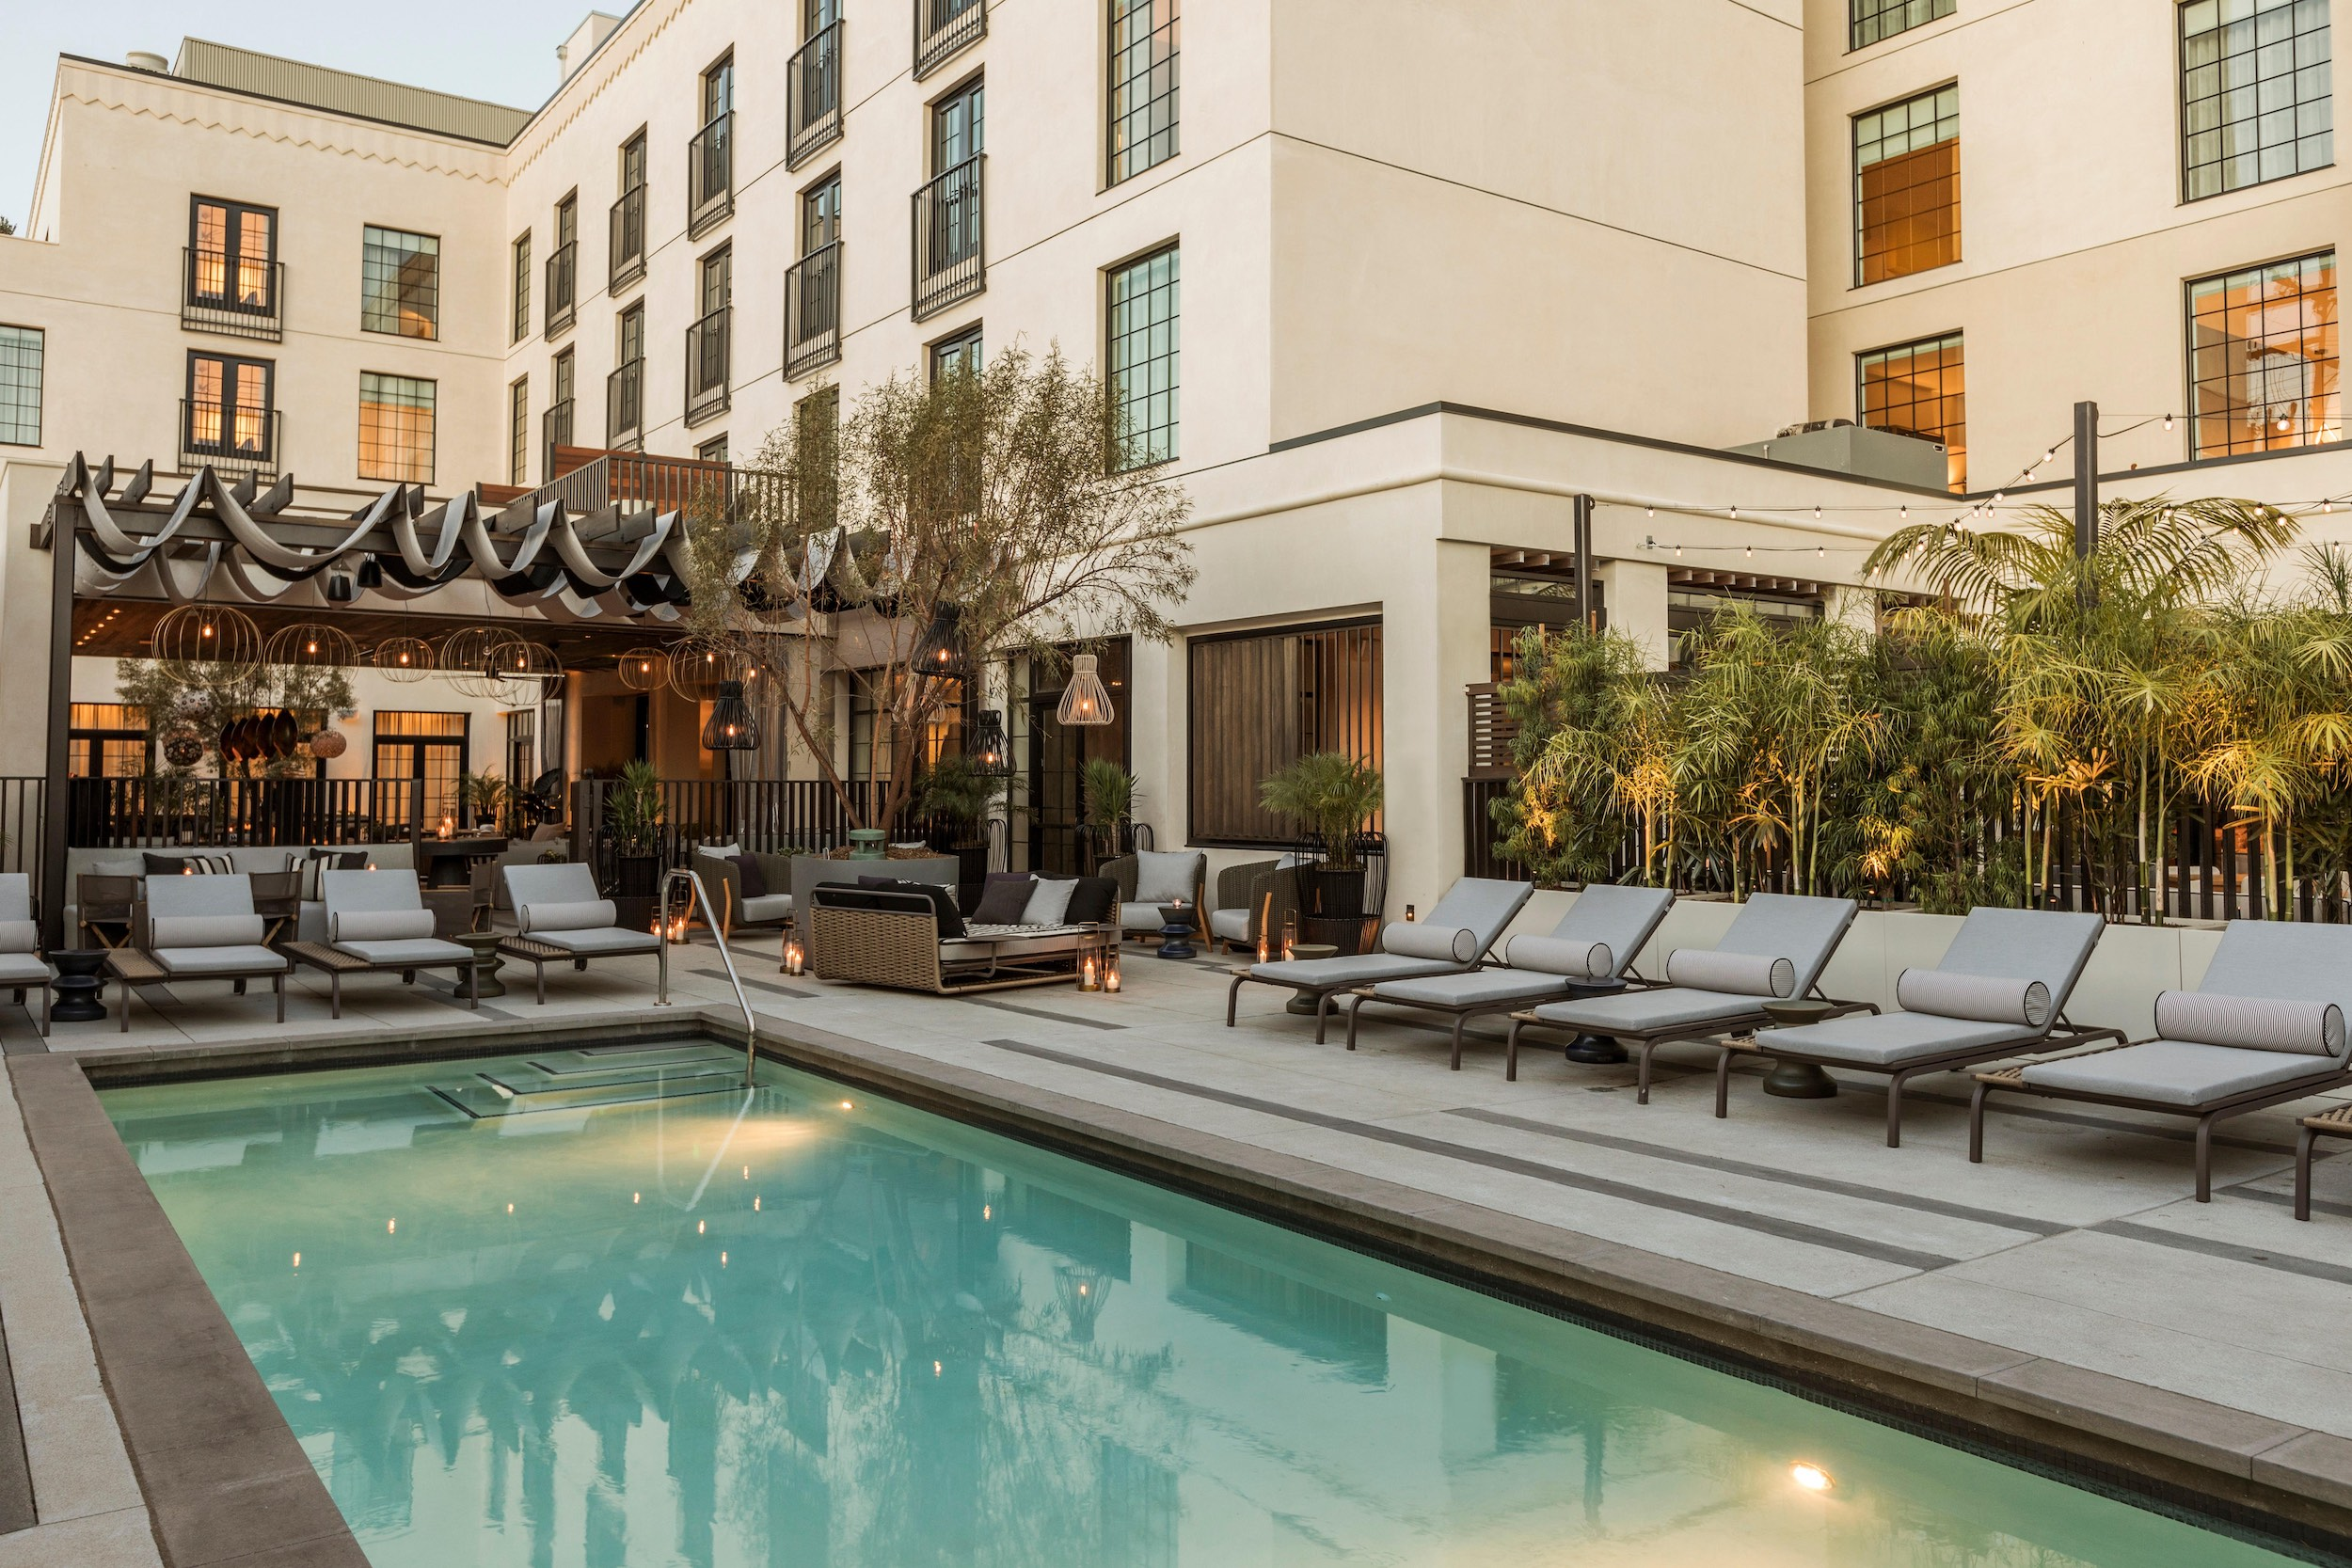 Pool courtyard at Kimpton La Peer Hotel, West Hollywood, CA